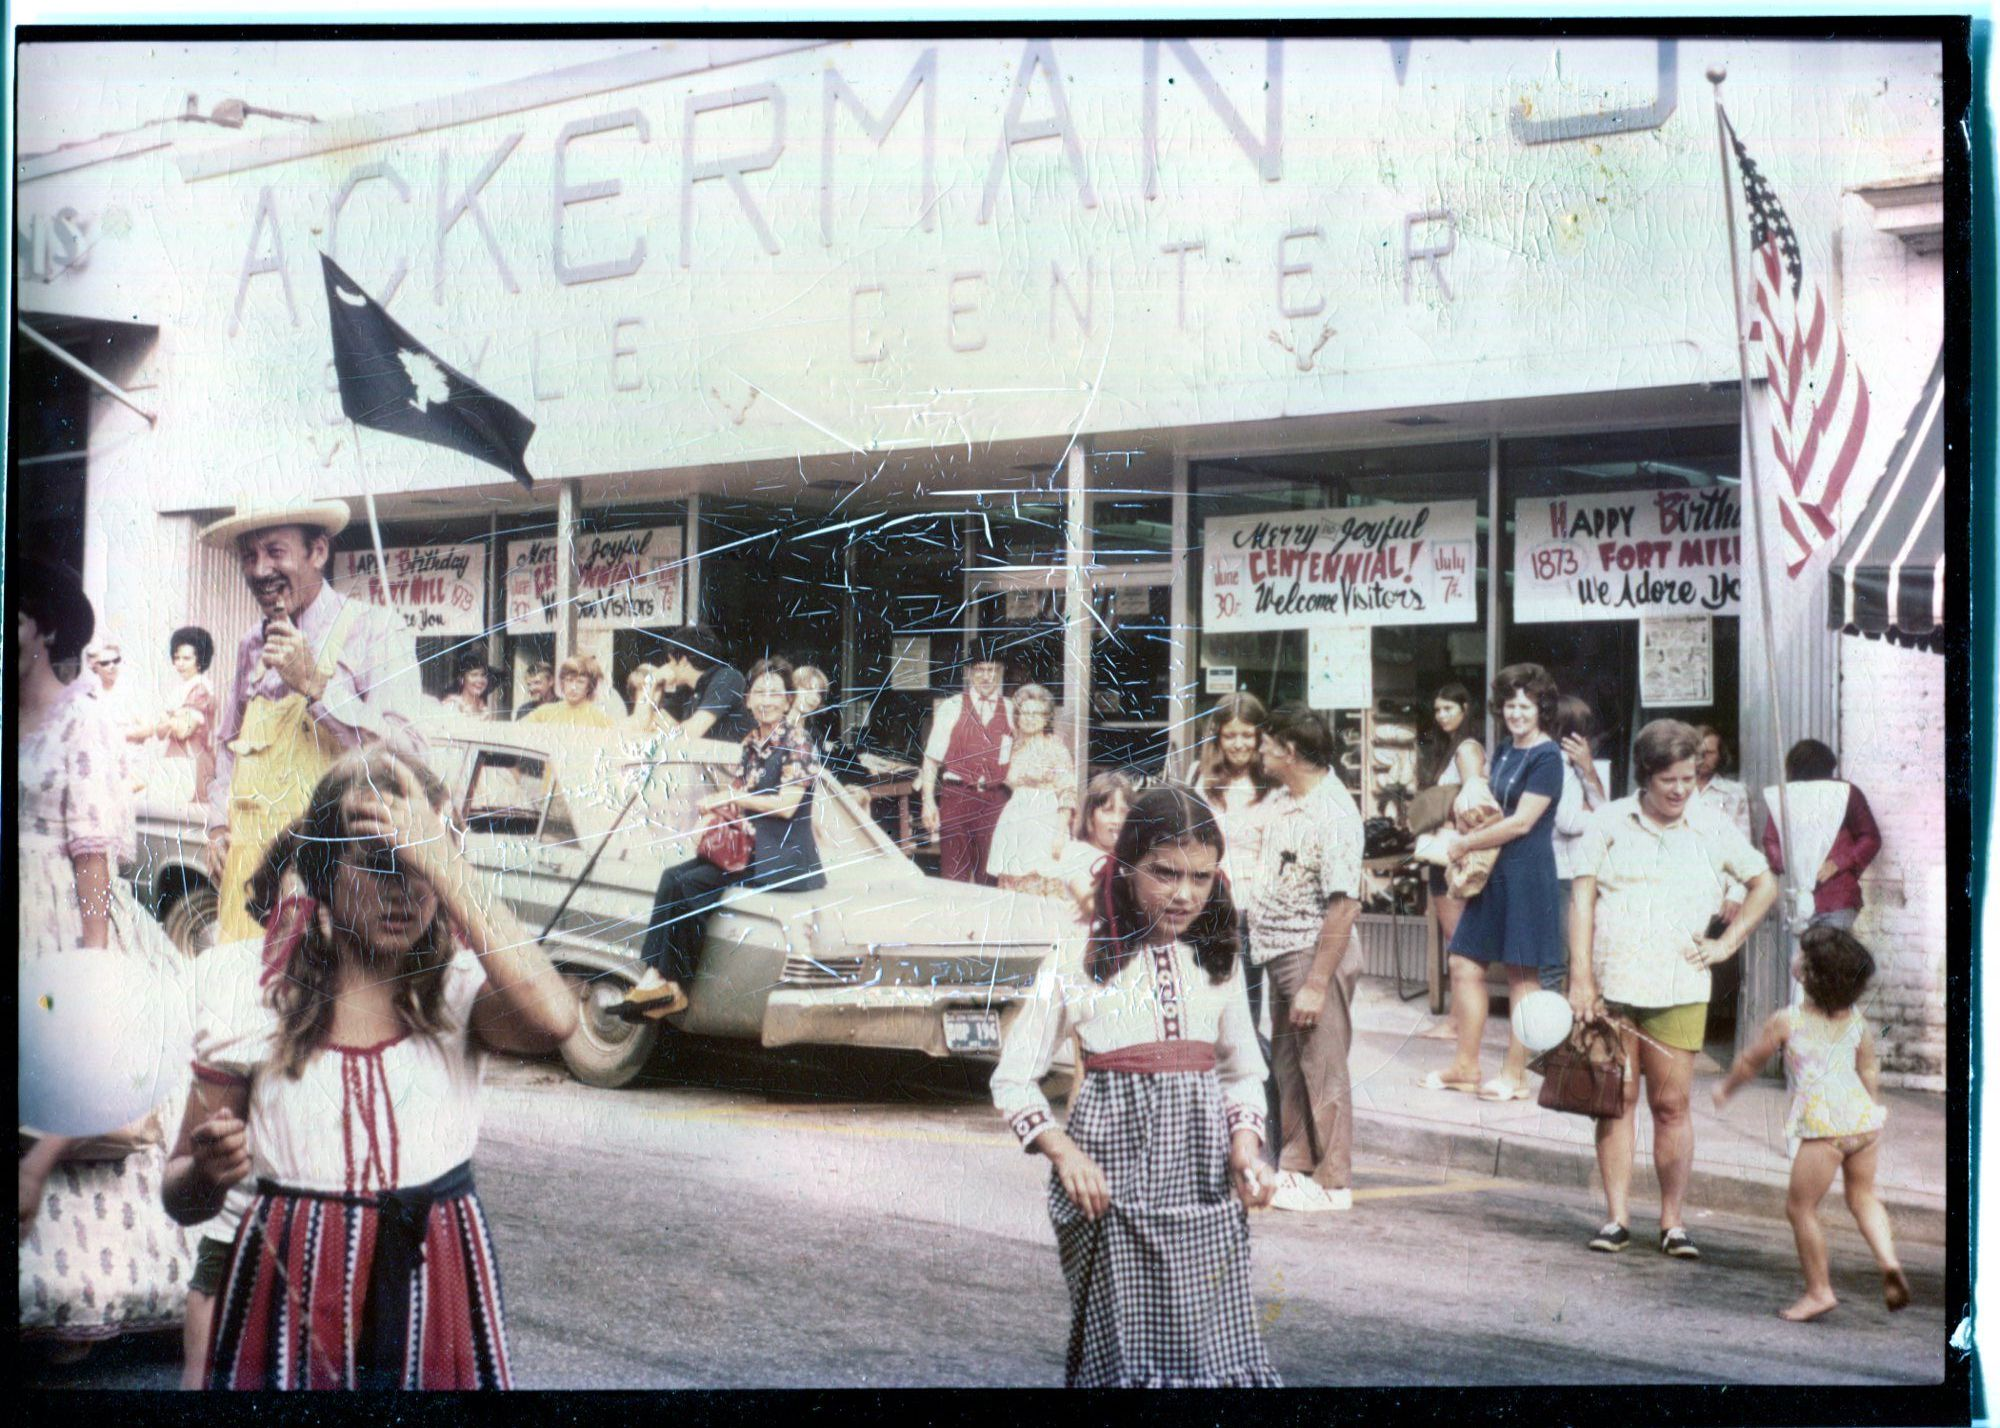 Front of Ackerman's during Fort Mill Centennial